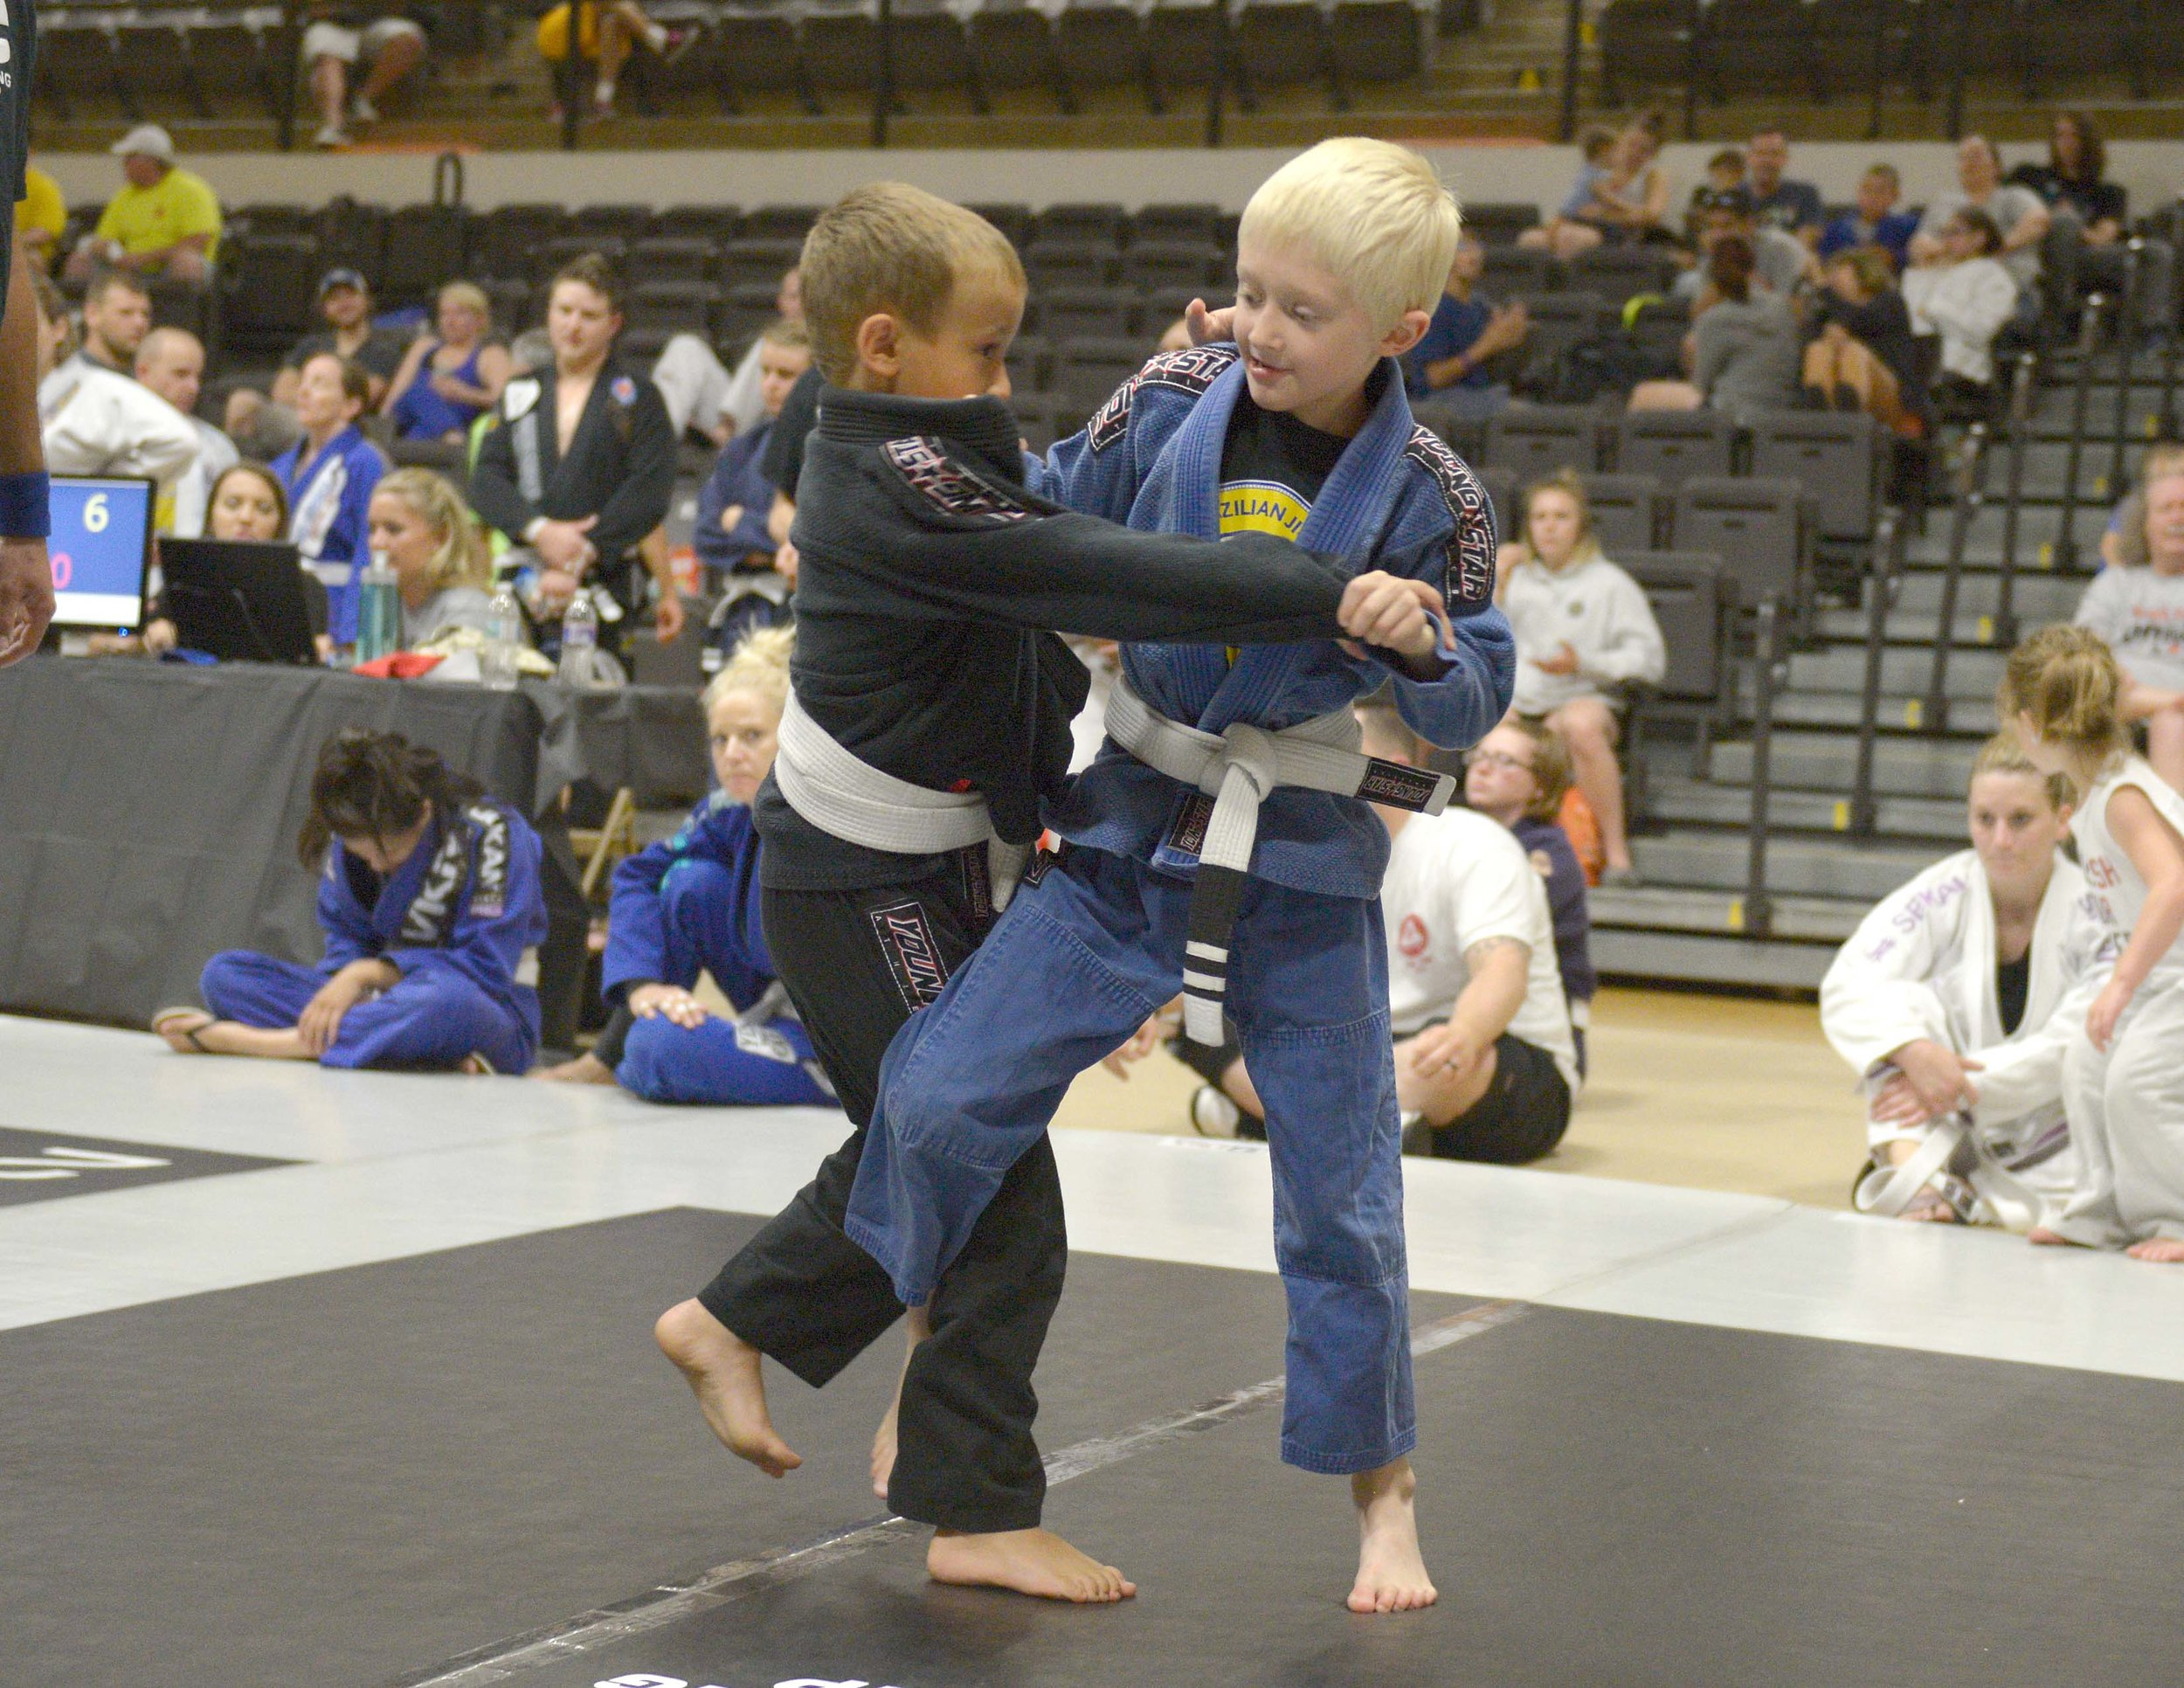 2 of our students battling it out in competition at the Victory Grappling Championship!